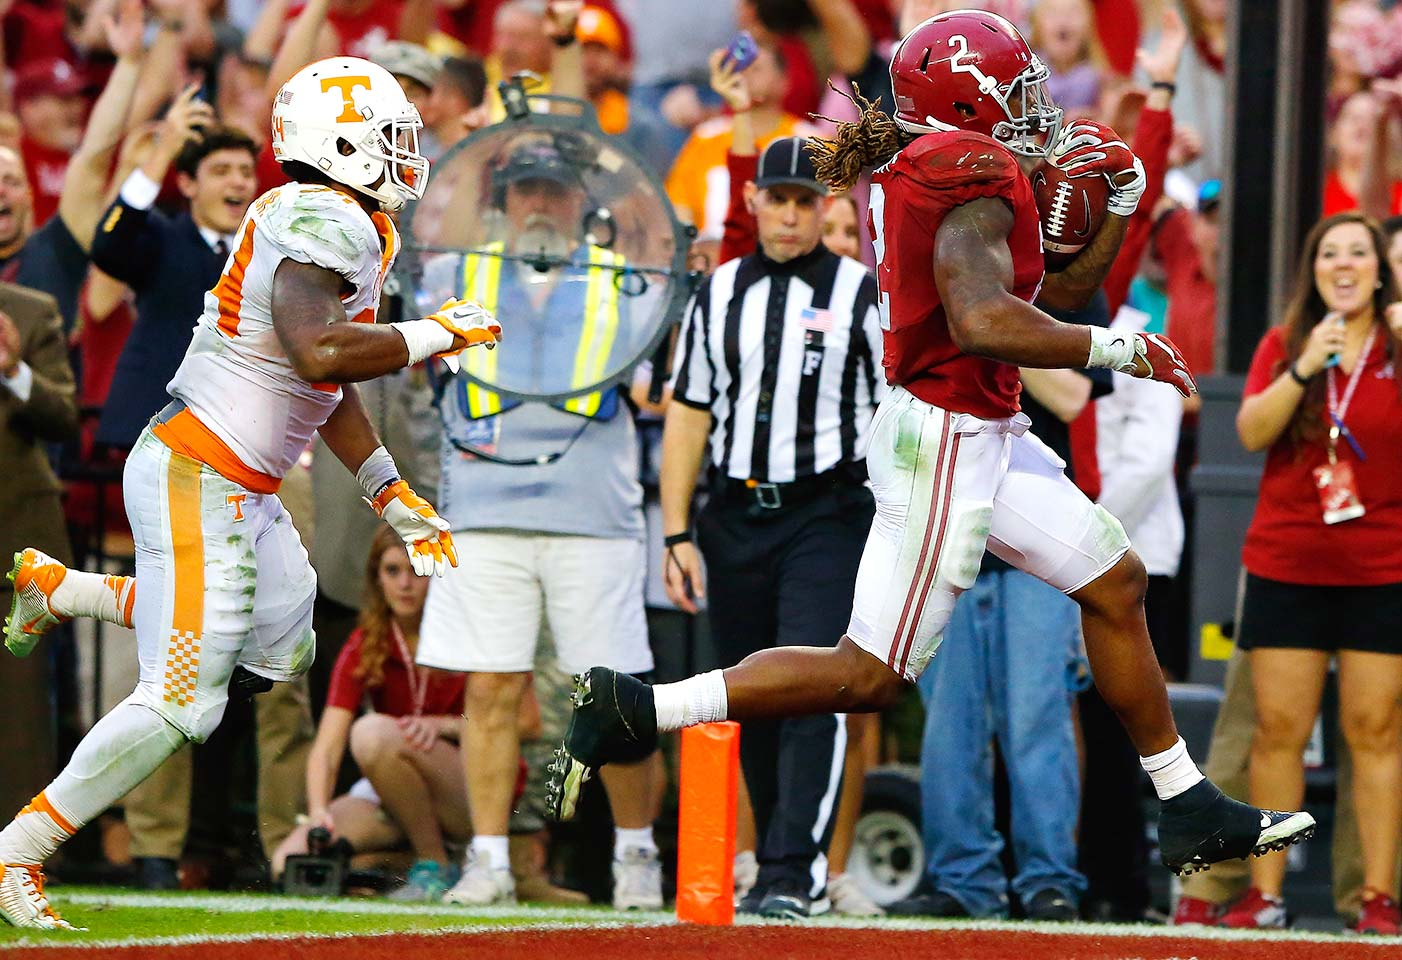 Alabama 19, Tennessee 14: It took a Derrick Henry touchdown run with 2:24 remaining to give the Crimson Tide the lead for good. Two Alabama sacks on the Volunteers' ensuing drive helped seal the win, especially the second, which resulted in a fumble recovery by Ryan Anderson.